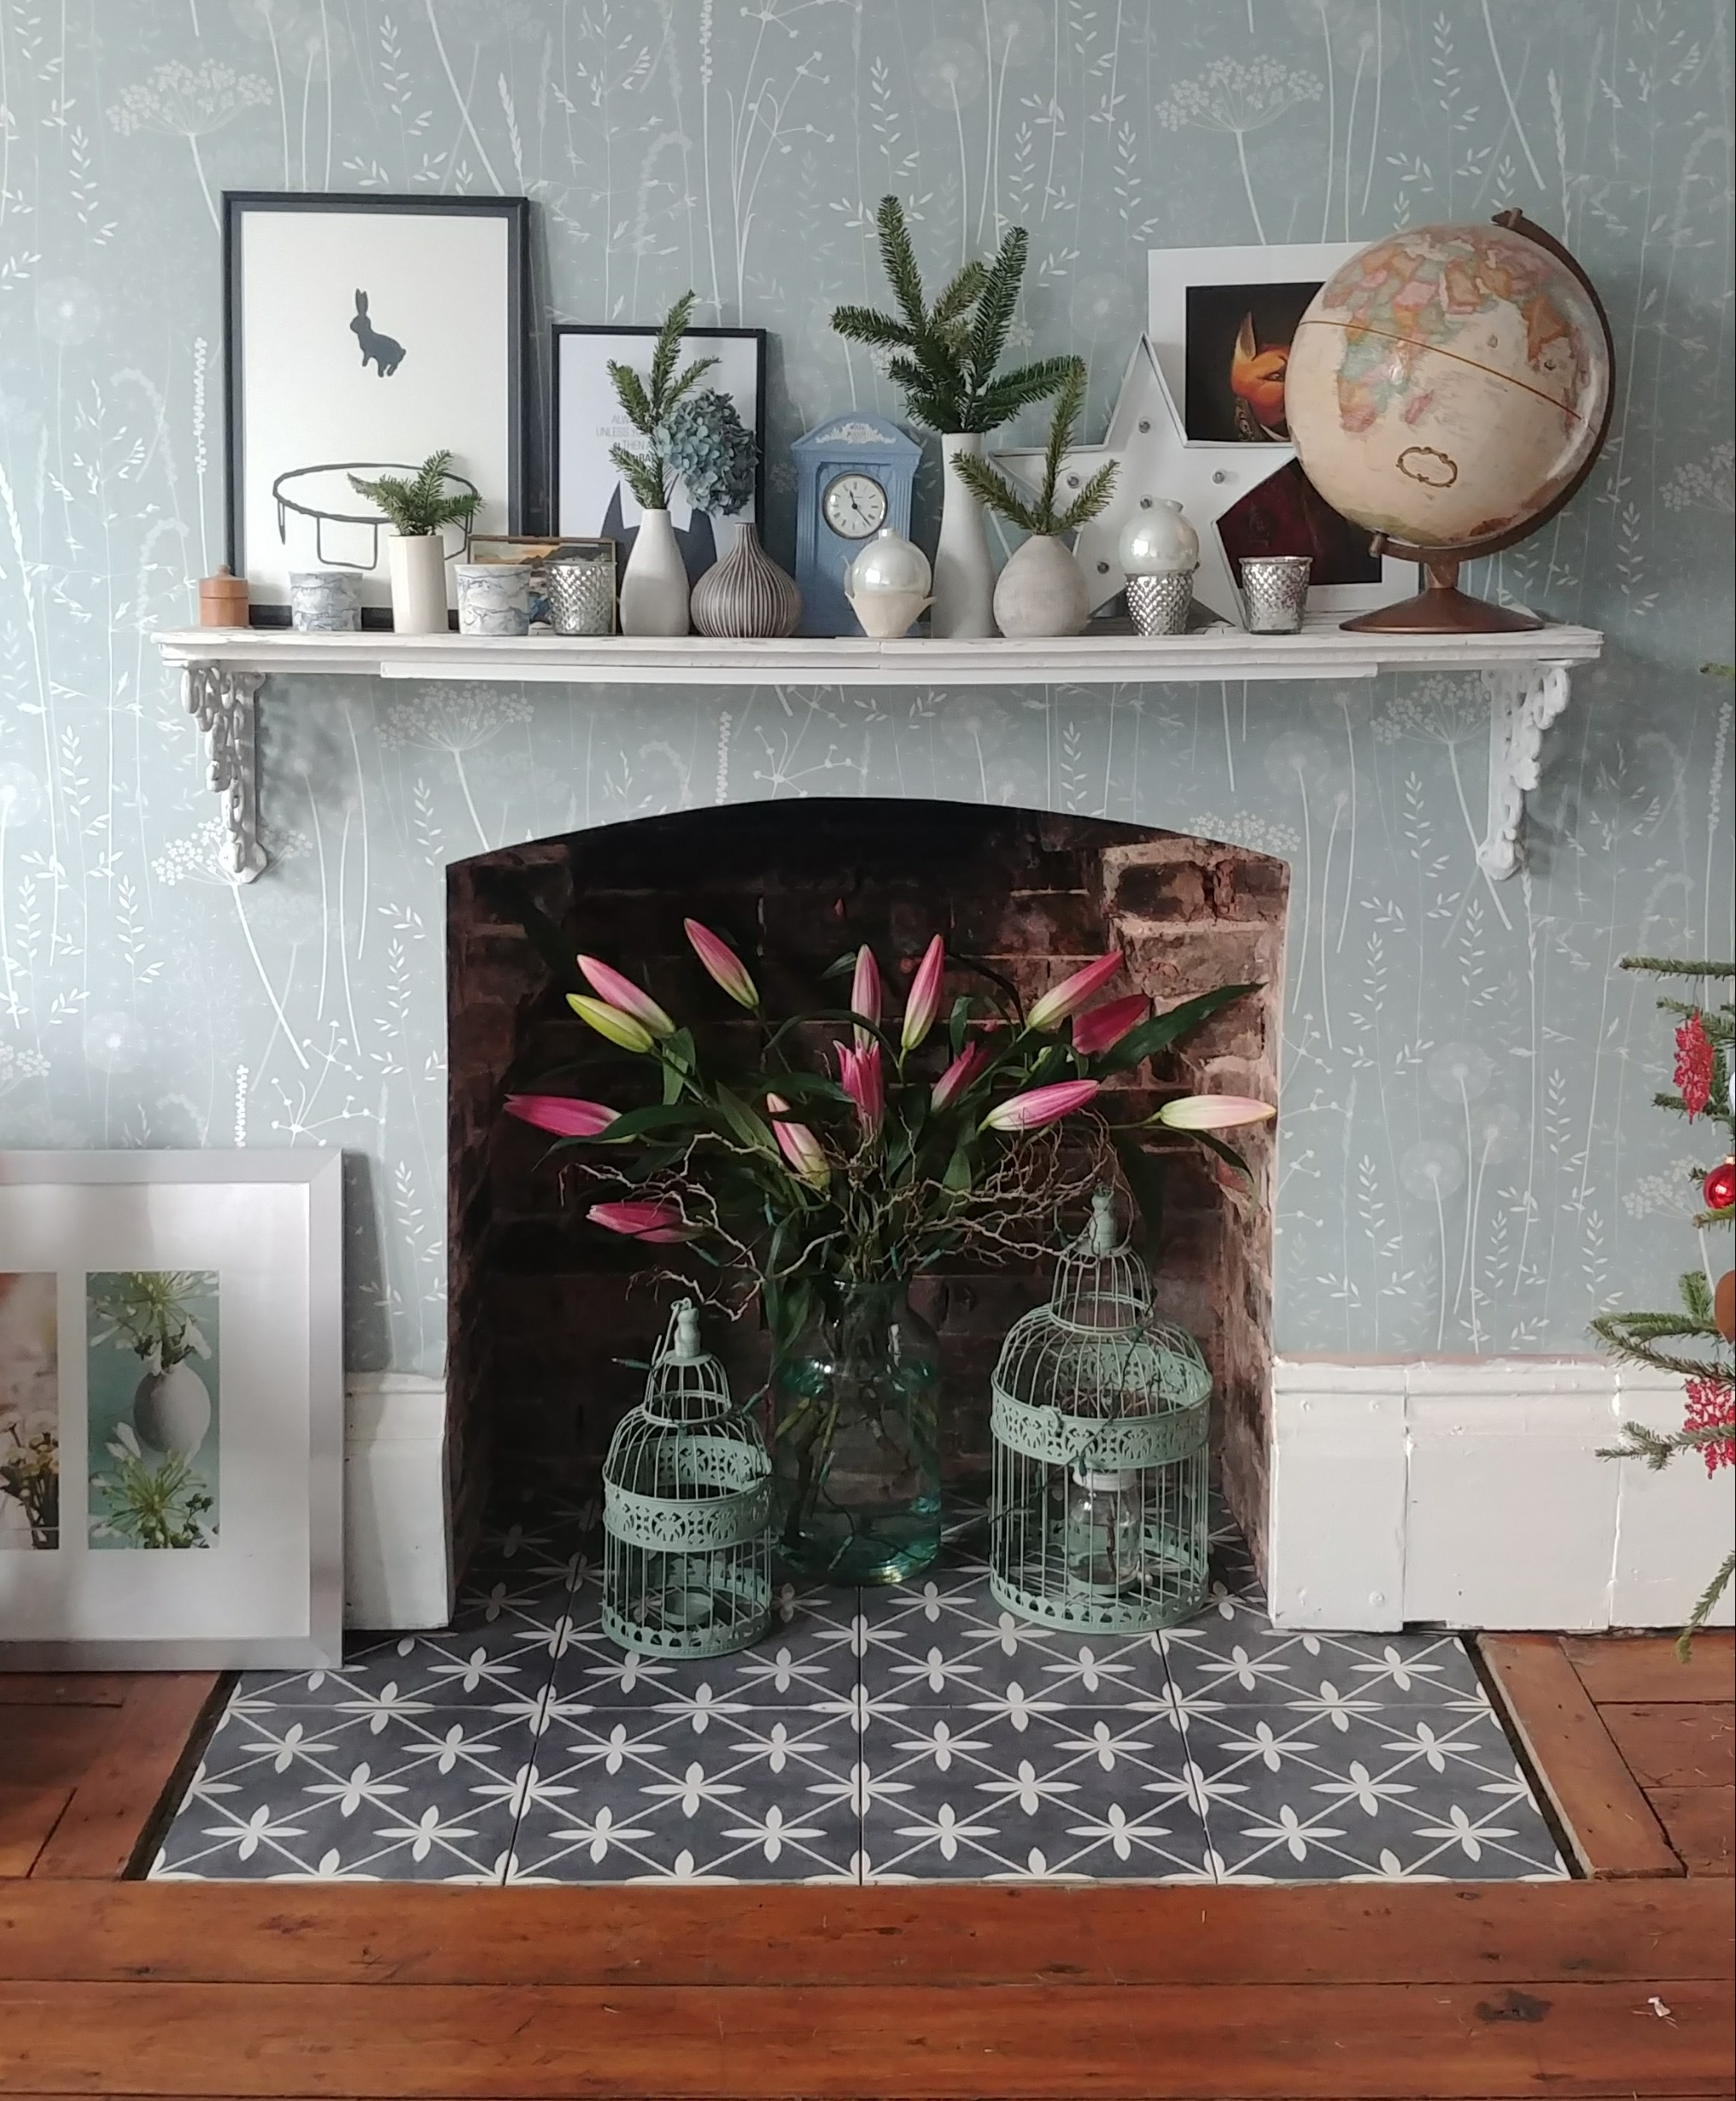 DIY wallpaper, fireplace removal and making good, floors, tiling, and mantelpiece.